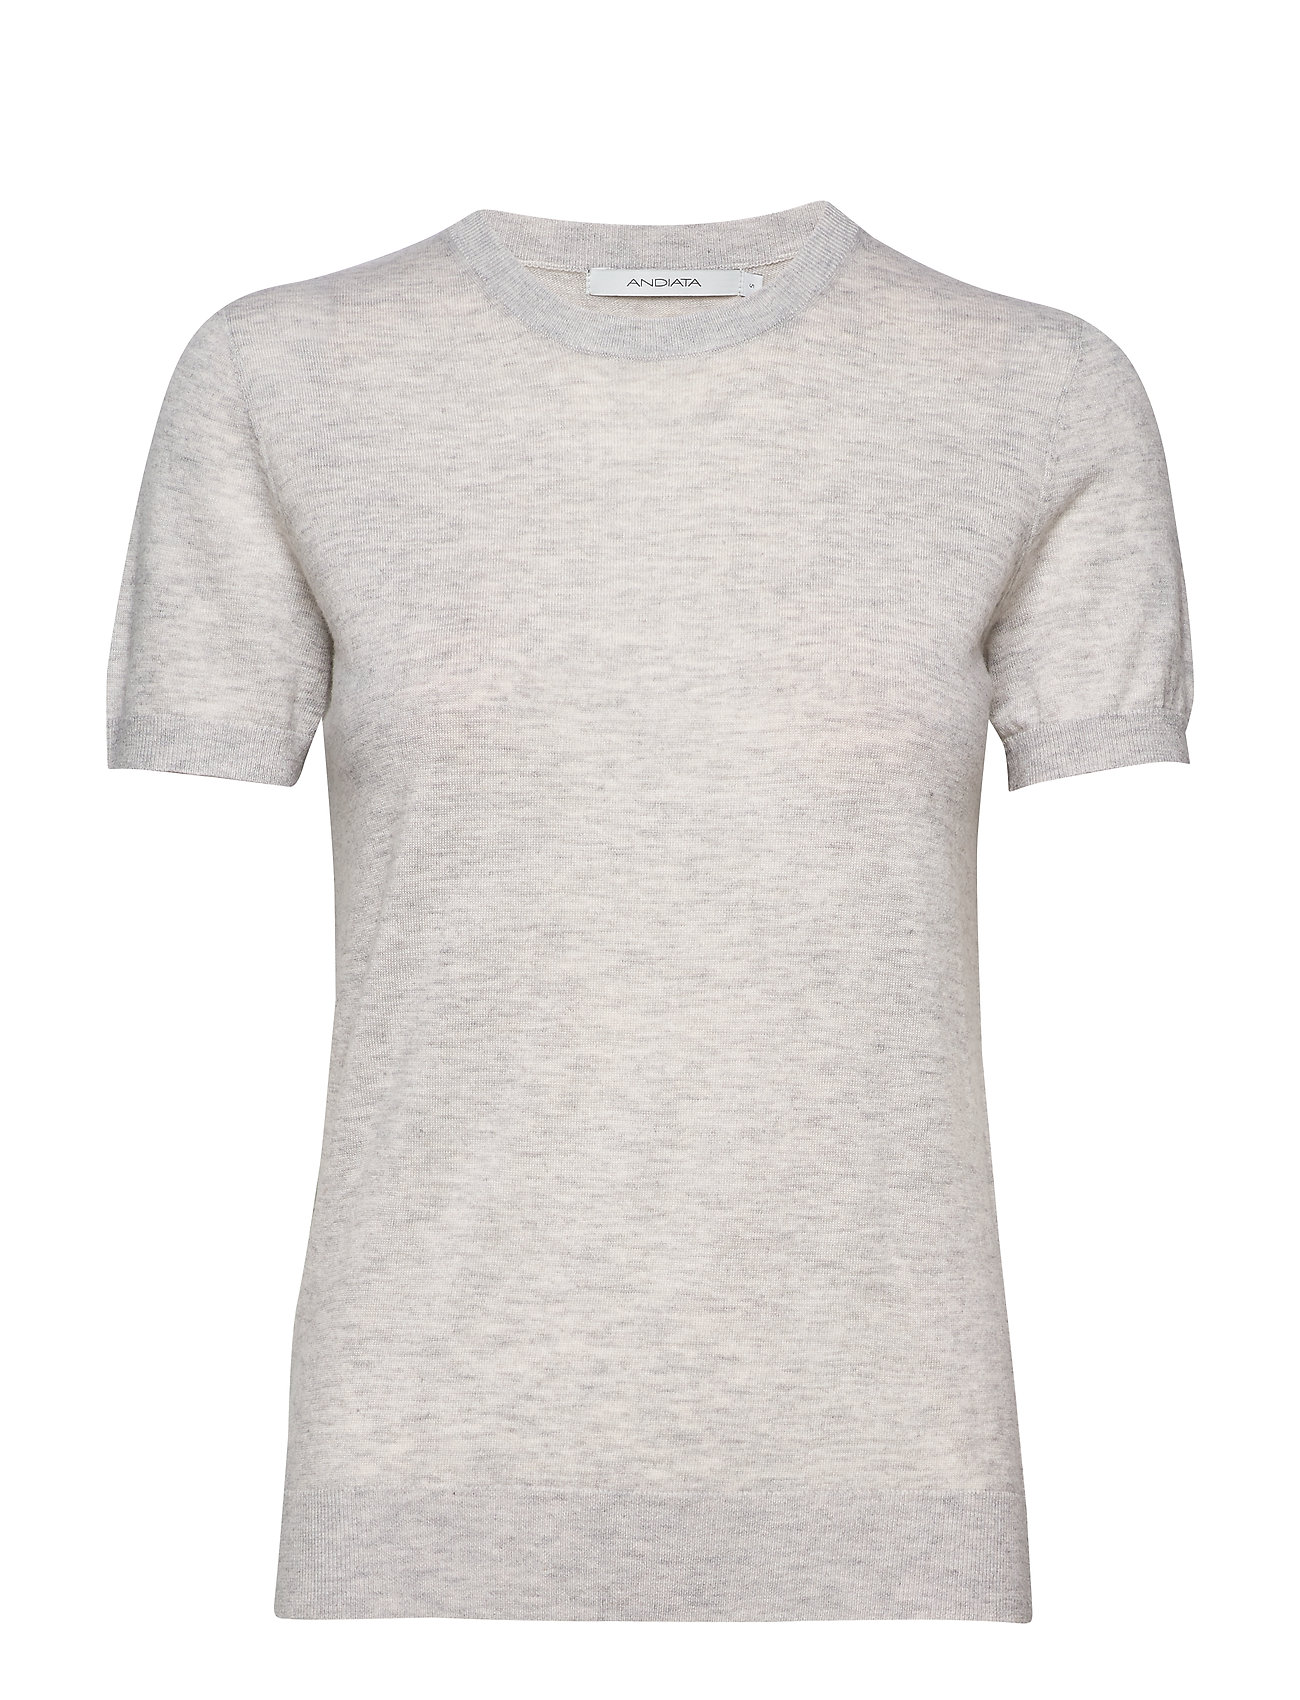 Image of Josefa Sl Knitted Top T-Shirts & Tops Knitted T-Skjorte/tops Grå Andiata (3303360795)